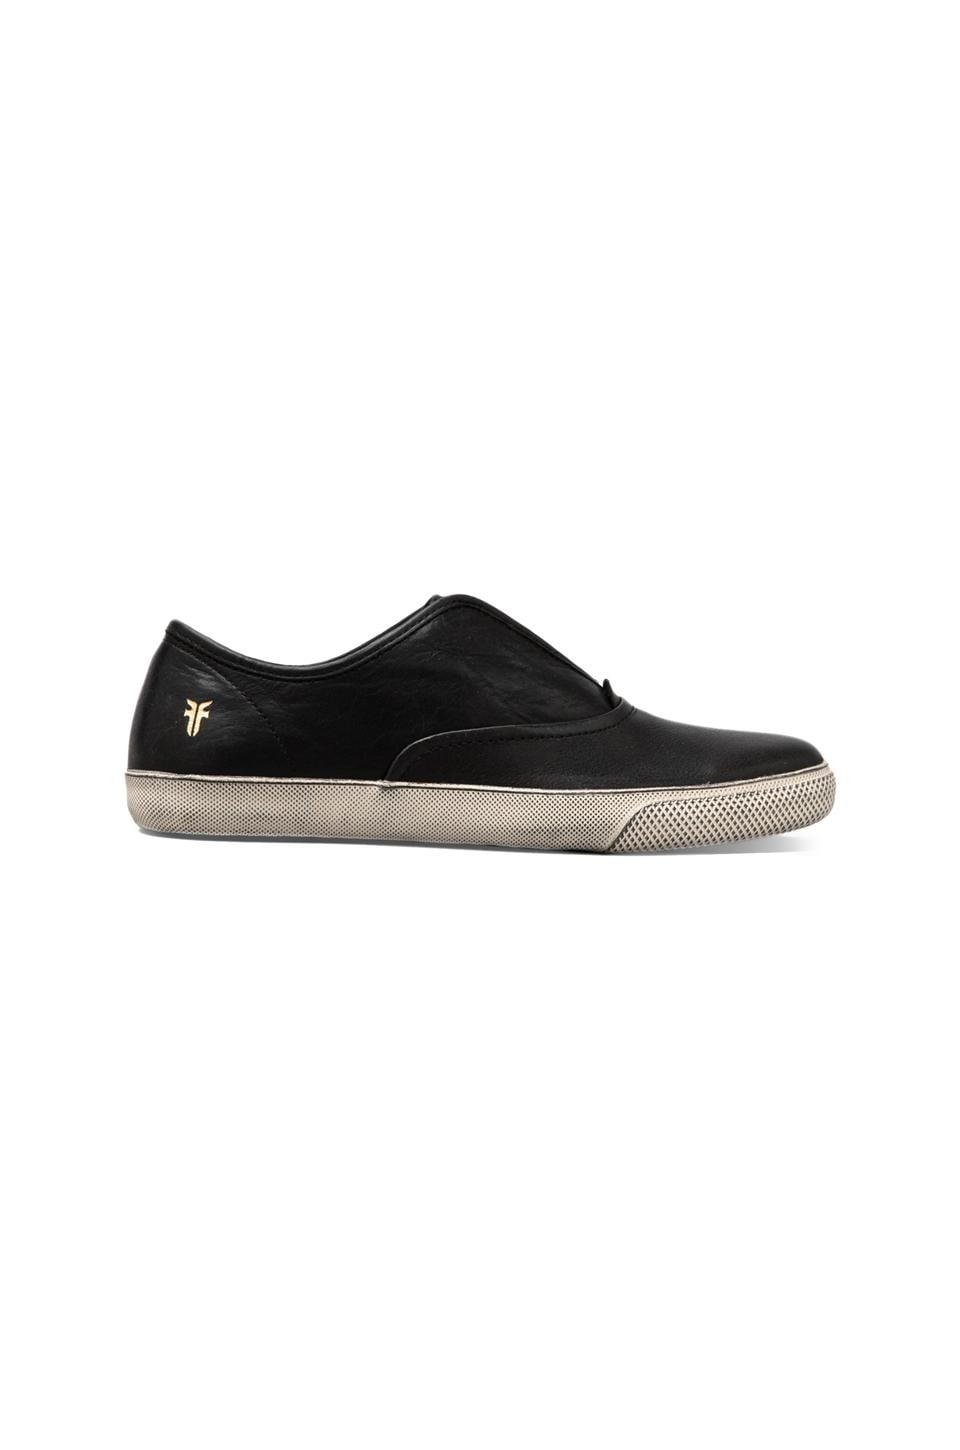 Frye Chambers Slip On in Black